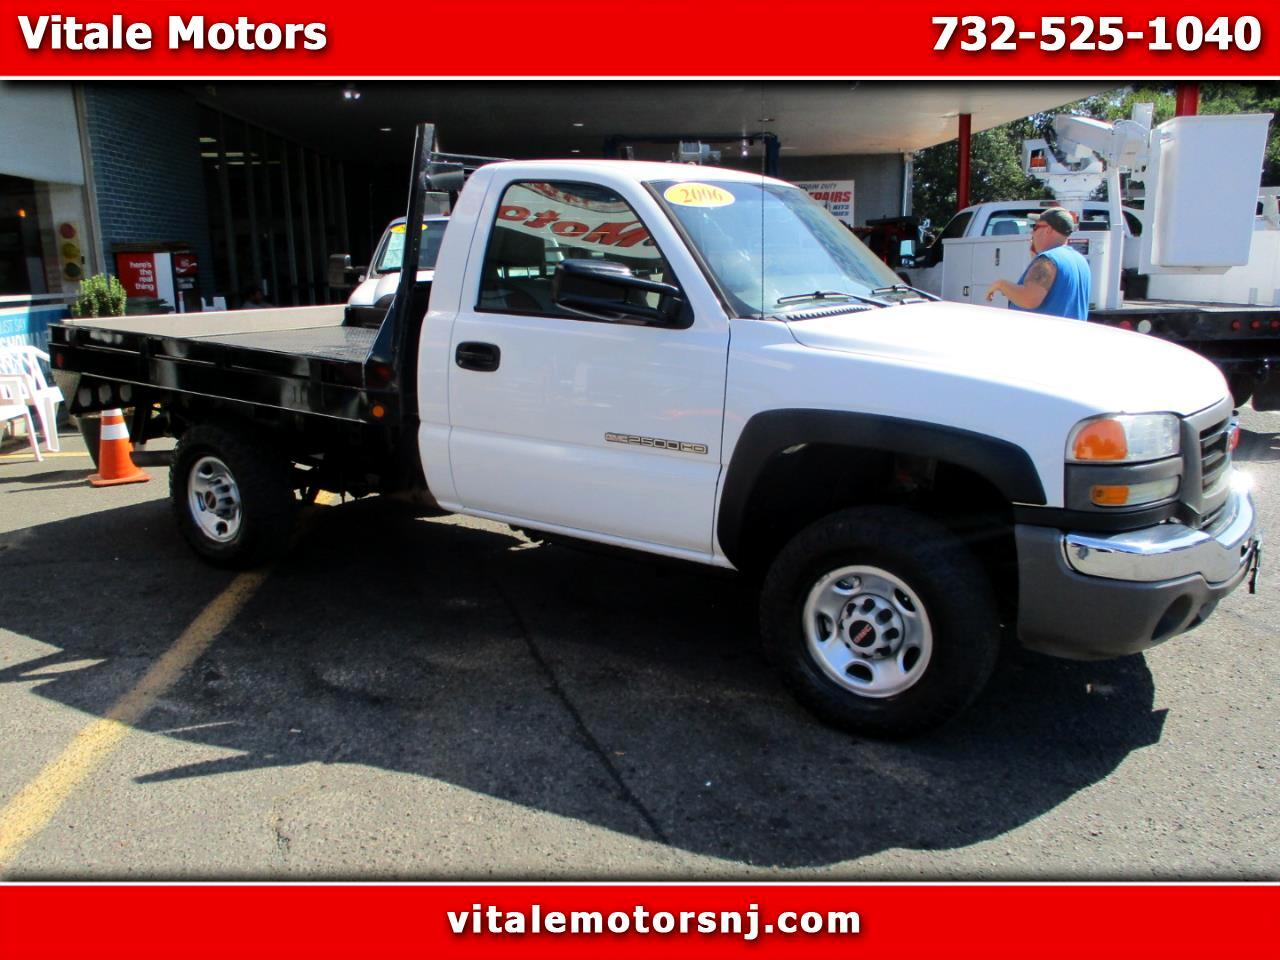 "2006 GMC Sierra 2500HD REG CAB 4X4 FLAT DECK 8'6"" BODY"